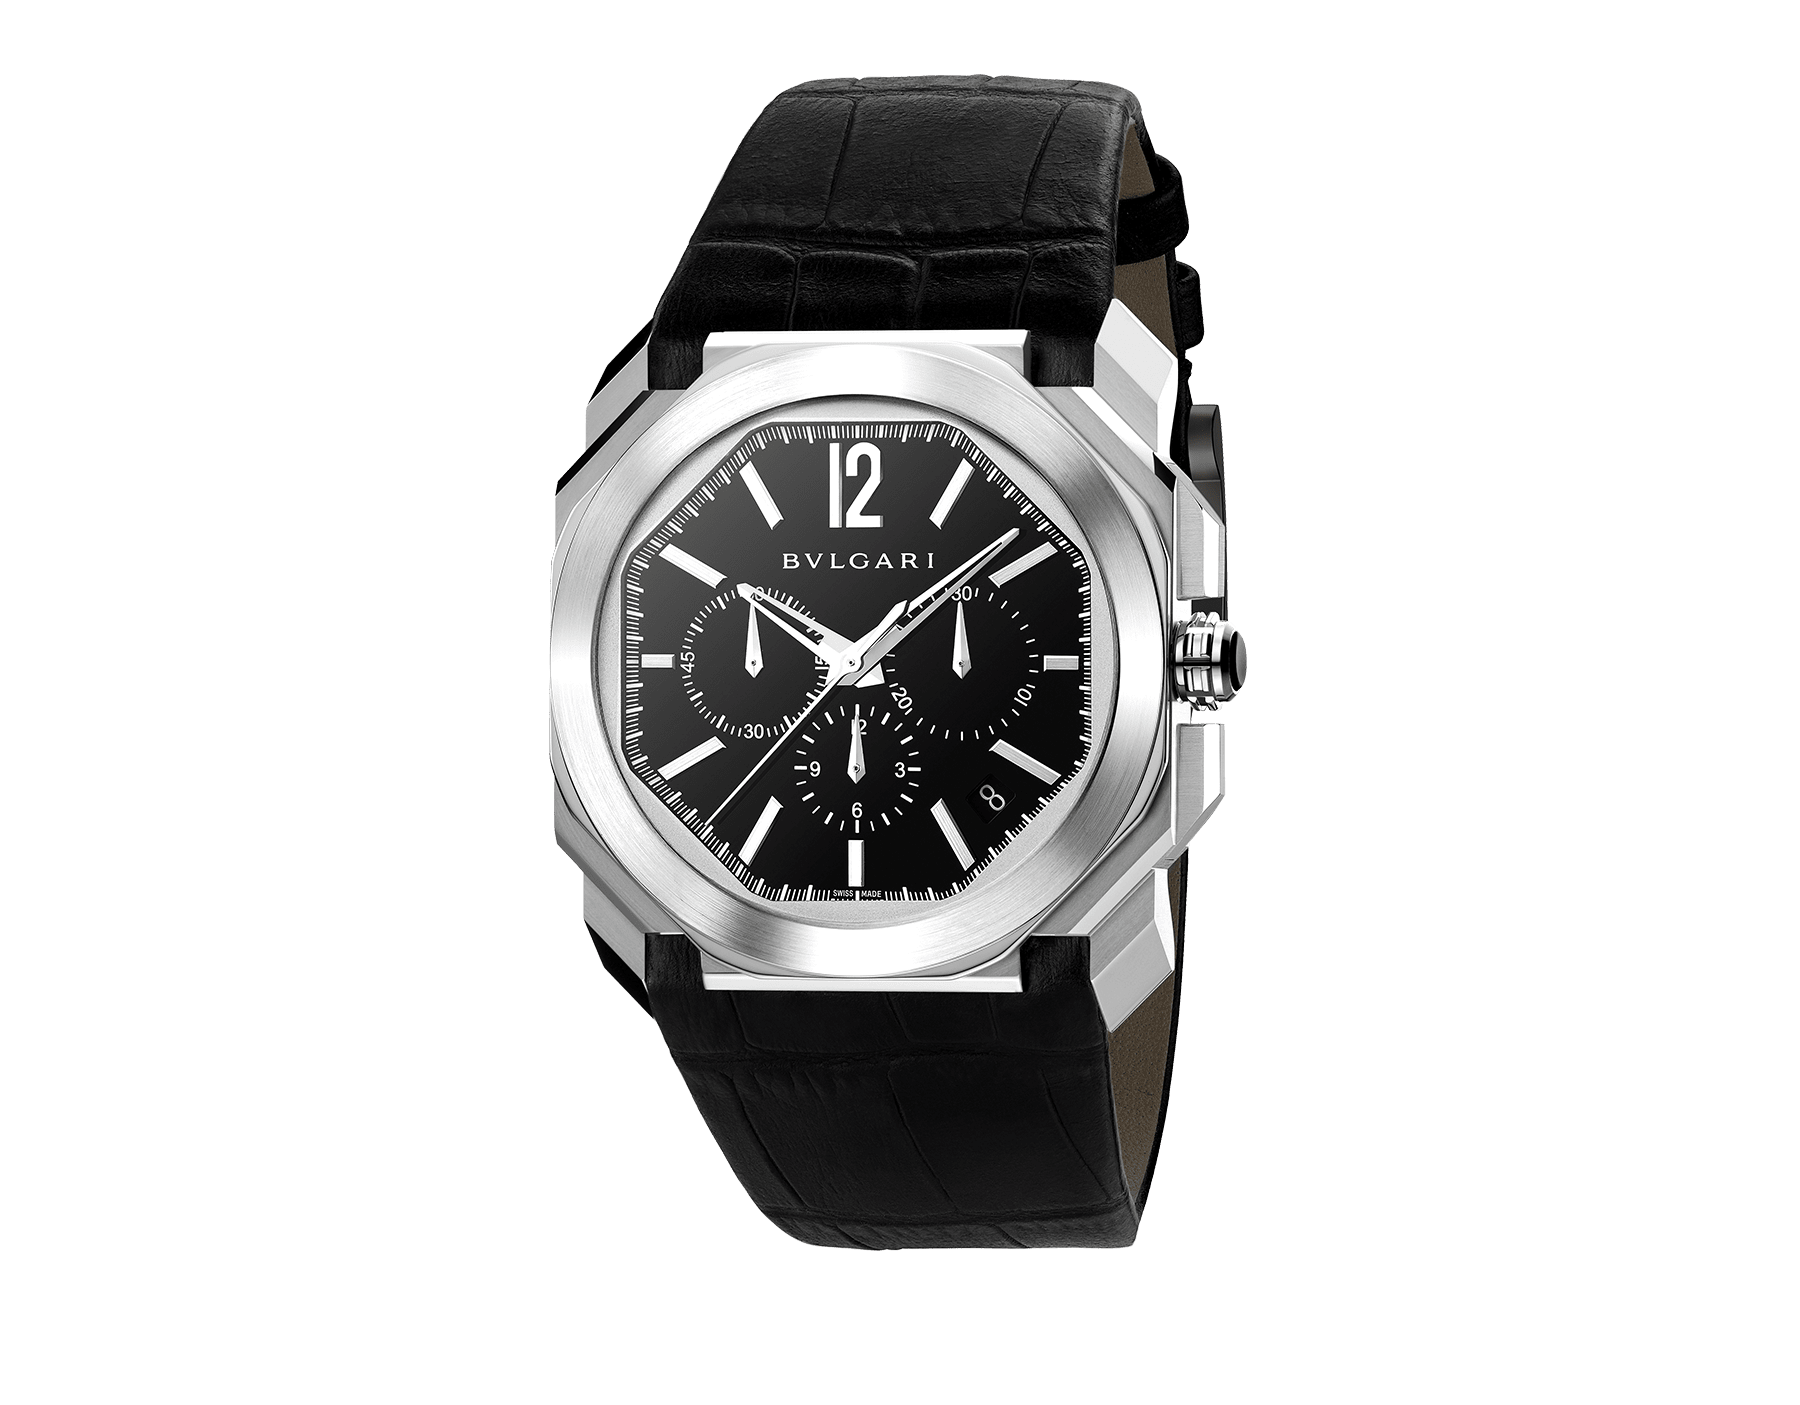 Octo watch with mechanical manufacture movement, high-frequency chronograph, automatic winding and date, stainless steel case, black lacquered dial and black alligator bracelet. 102103 image 1